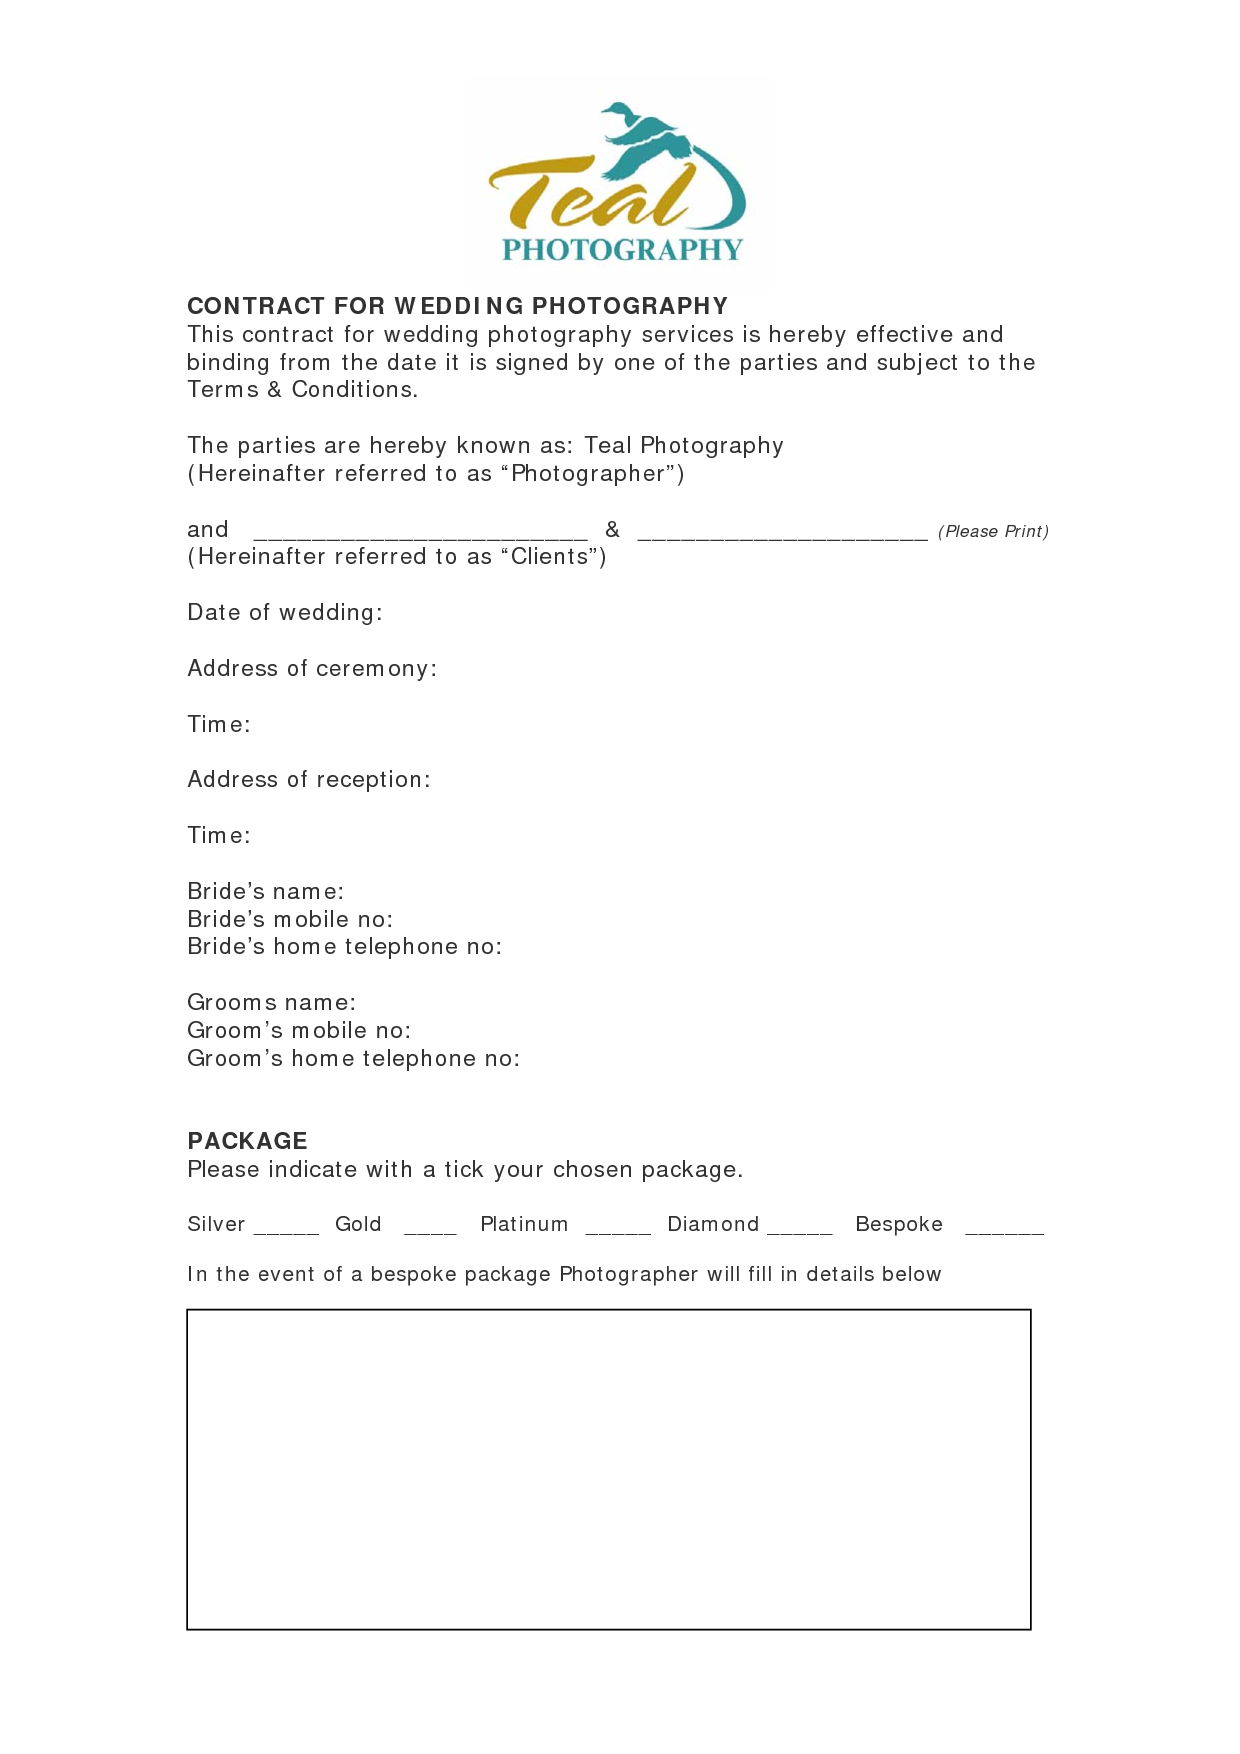 Basic Wedding Photography Contracts  Contract For Wedding